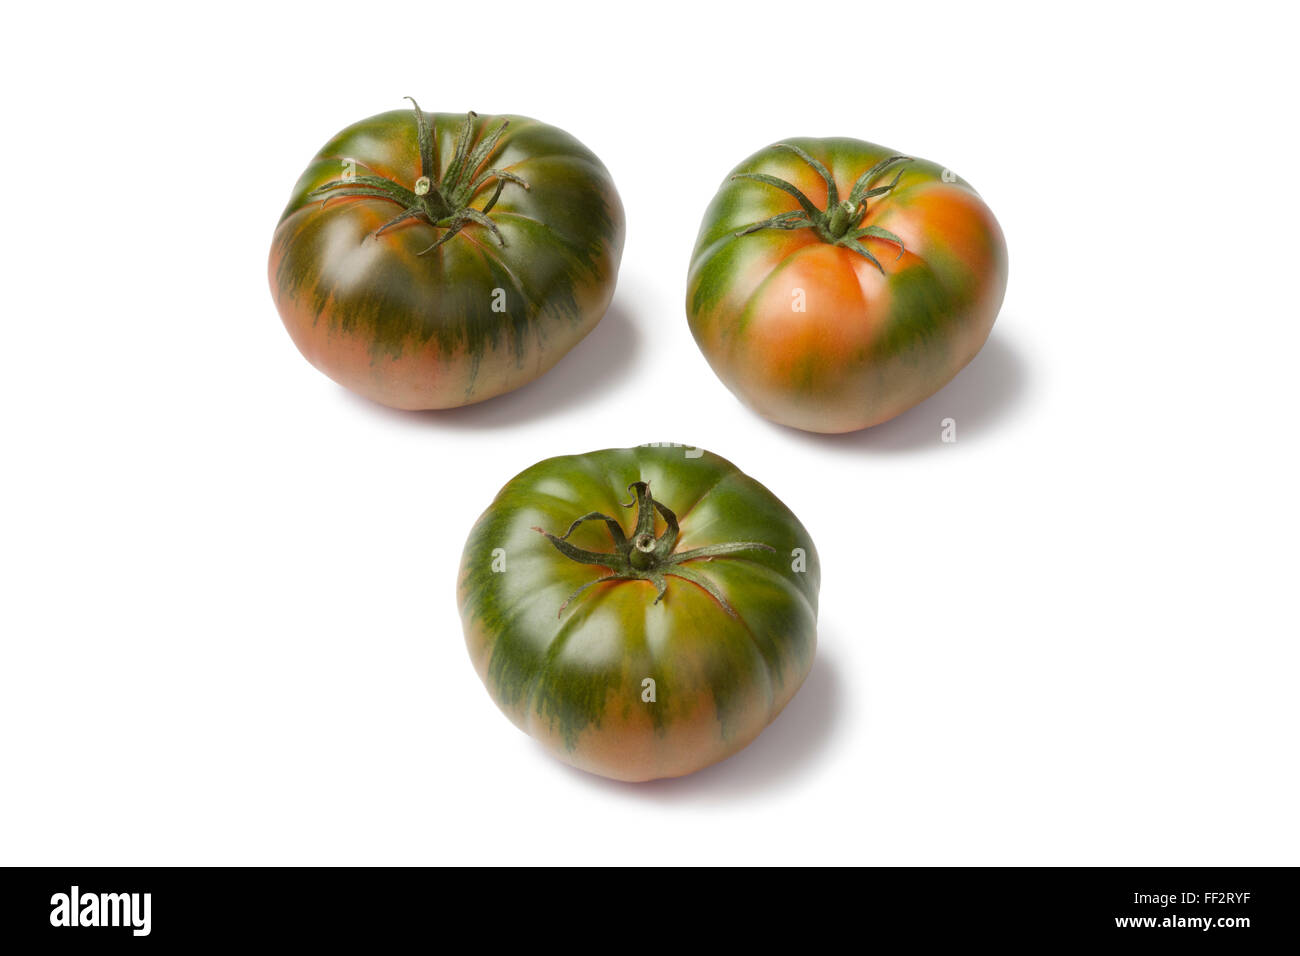 Fresh RAF heirloom tomatoes on white background - Stock Image